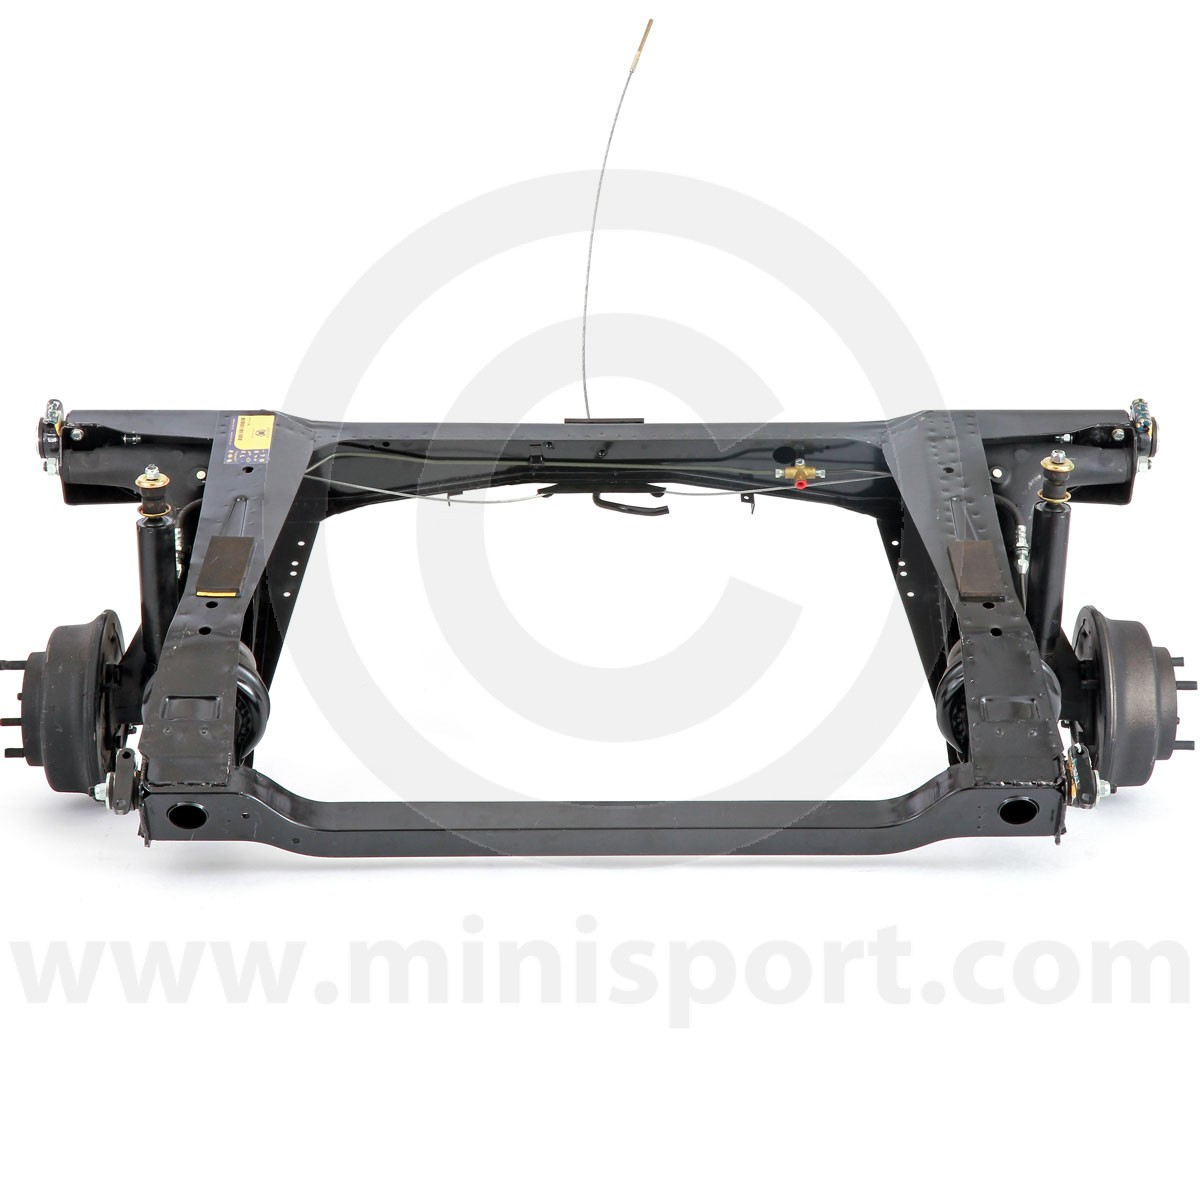 Hmp241002 Mini Subframe Assembly Suspension 1275 Gt With Alternator And Rocker Type Switches Genuine Rear Fully Assembled Ready To Fit